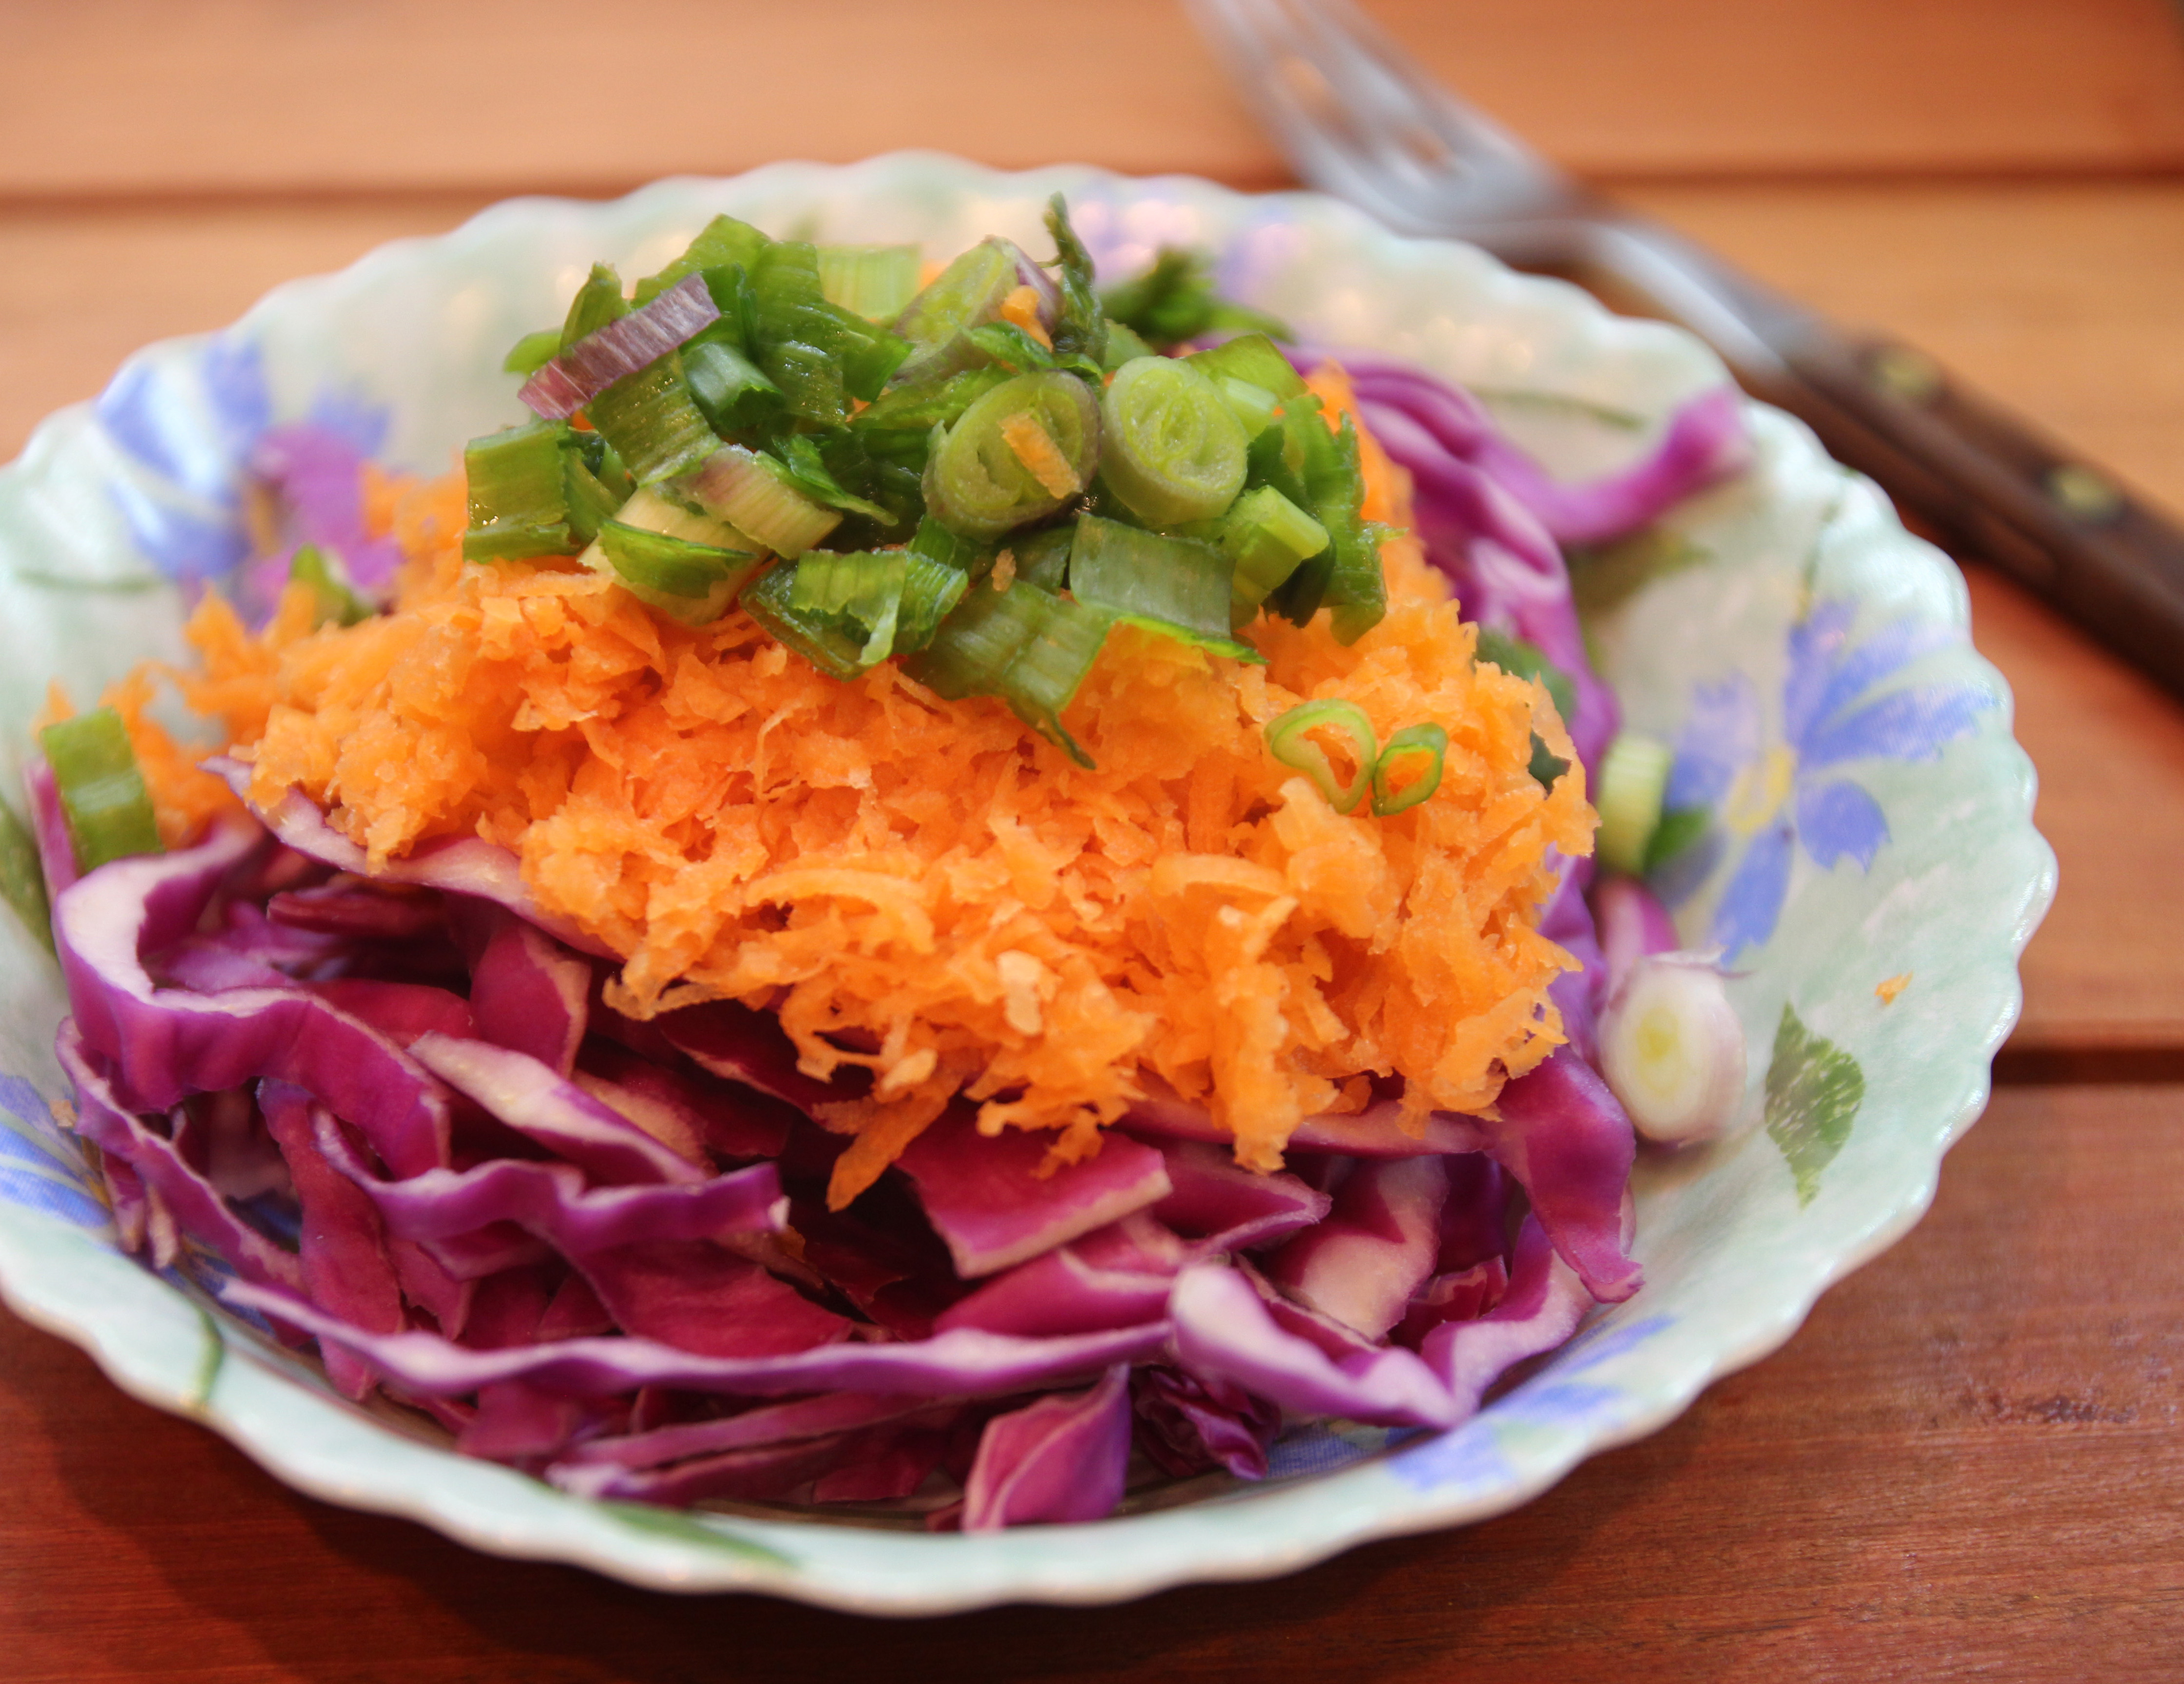 Spring Onion, Red Cabbage  Carrot Salad + A surprise visit